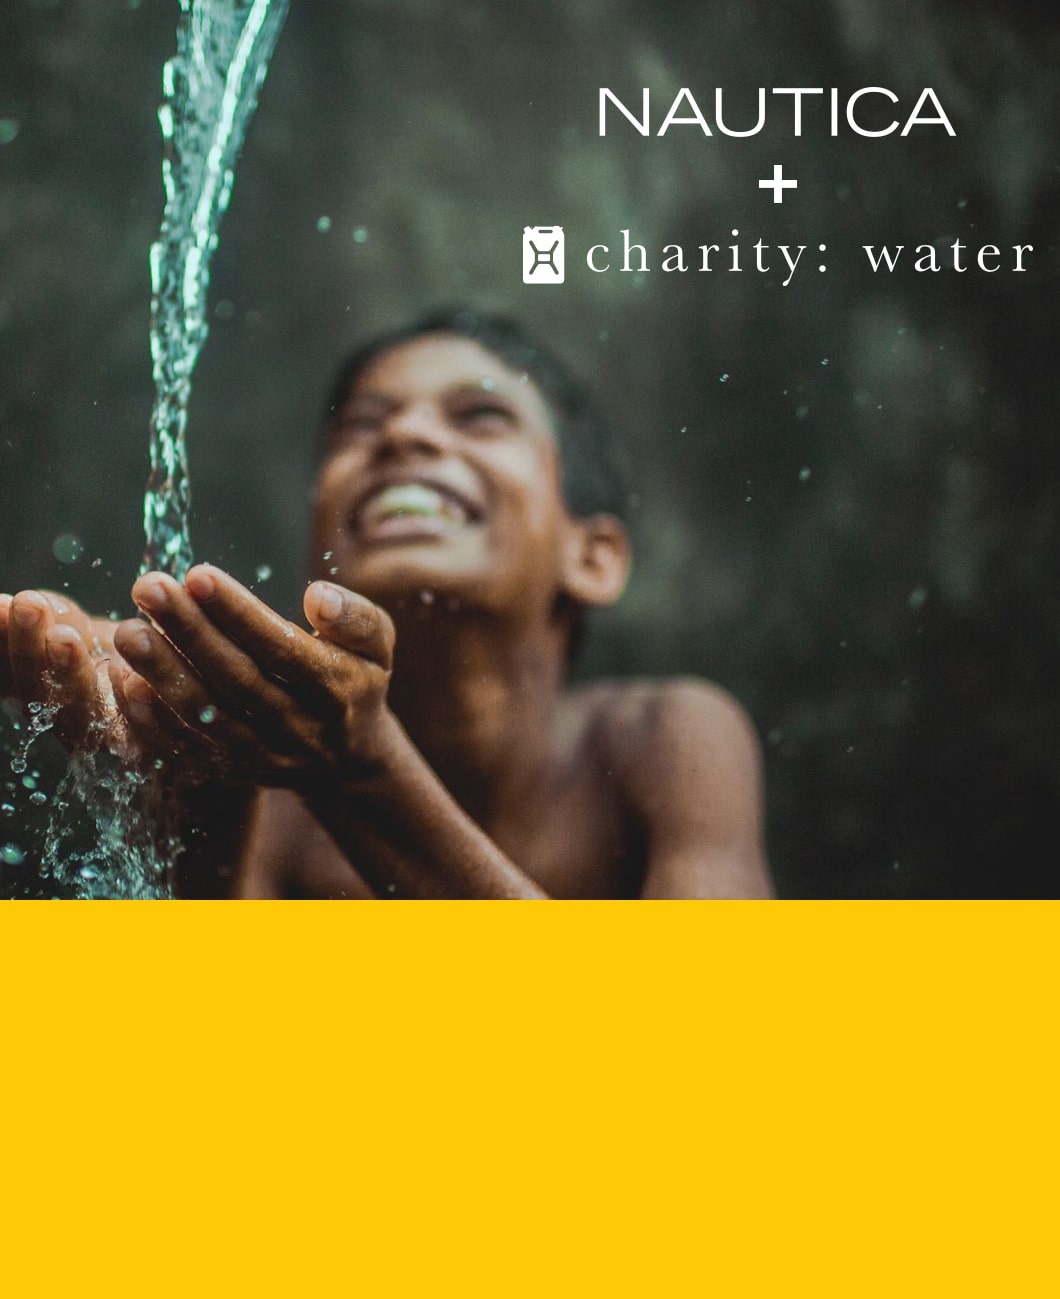 NAUTICA CHARITY WATER